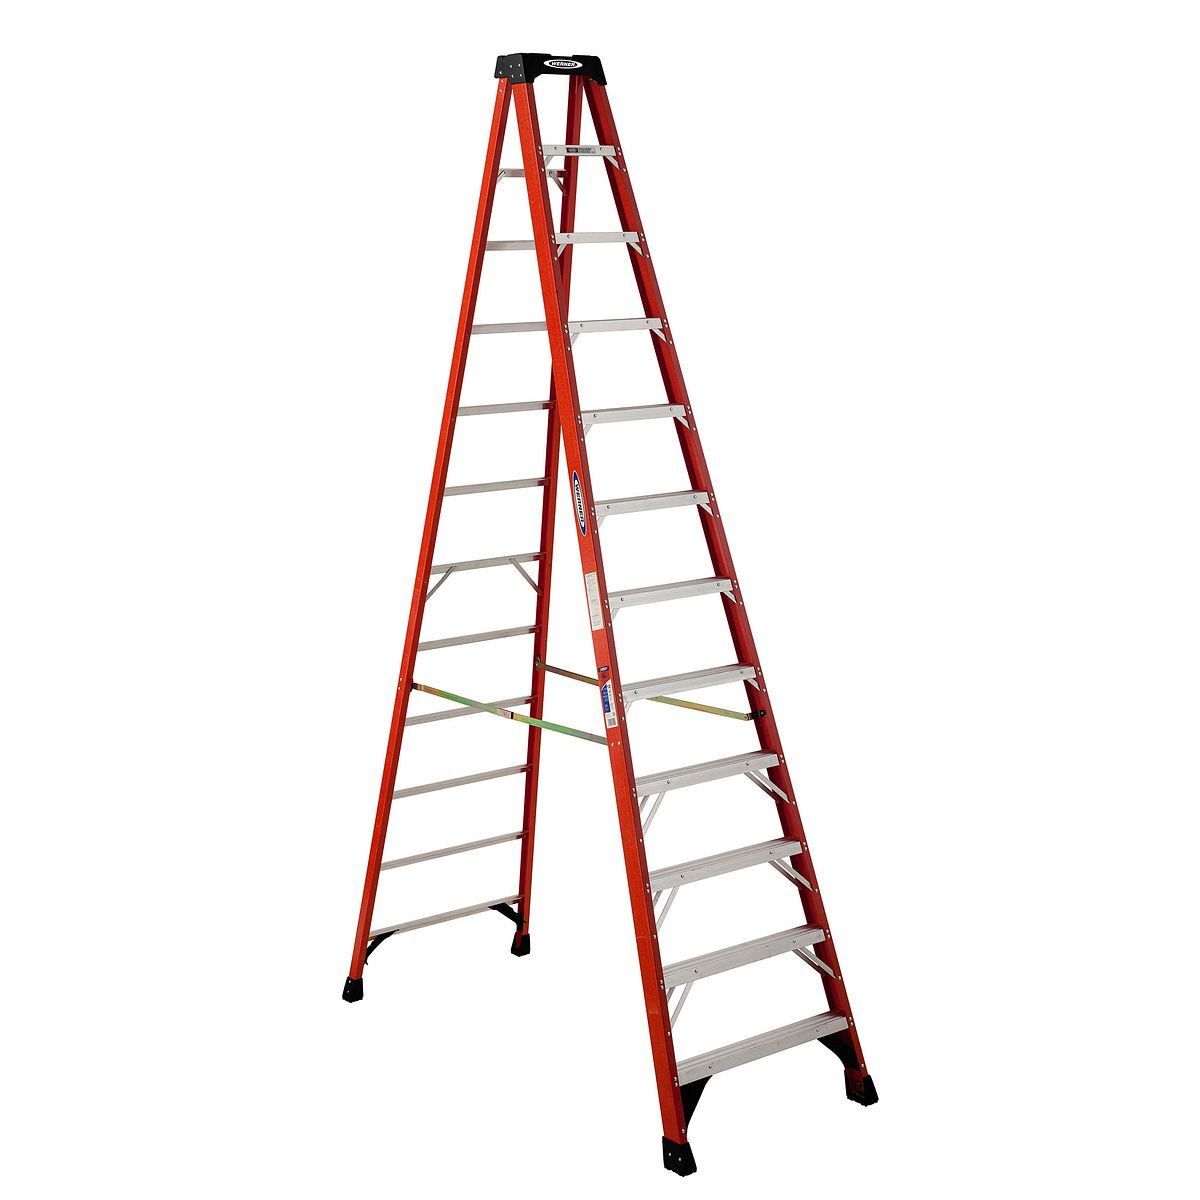 Marvelous Nxt1A12 Step Ladders Werner Us Caraccident5 Cool Chair Designs And Ideas Caraccident5Info